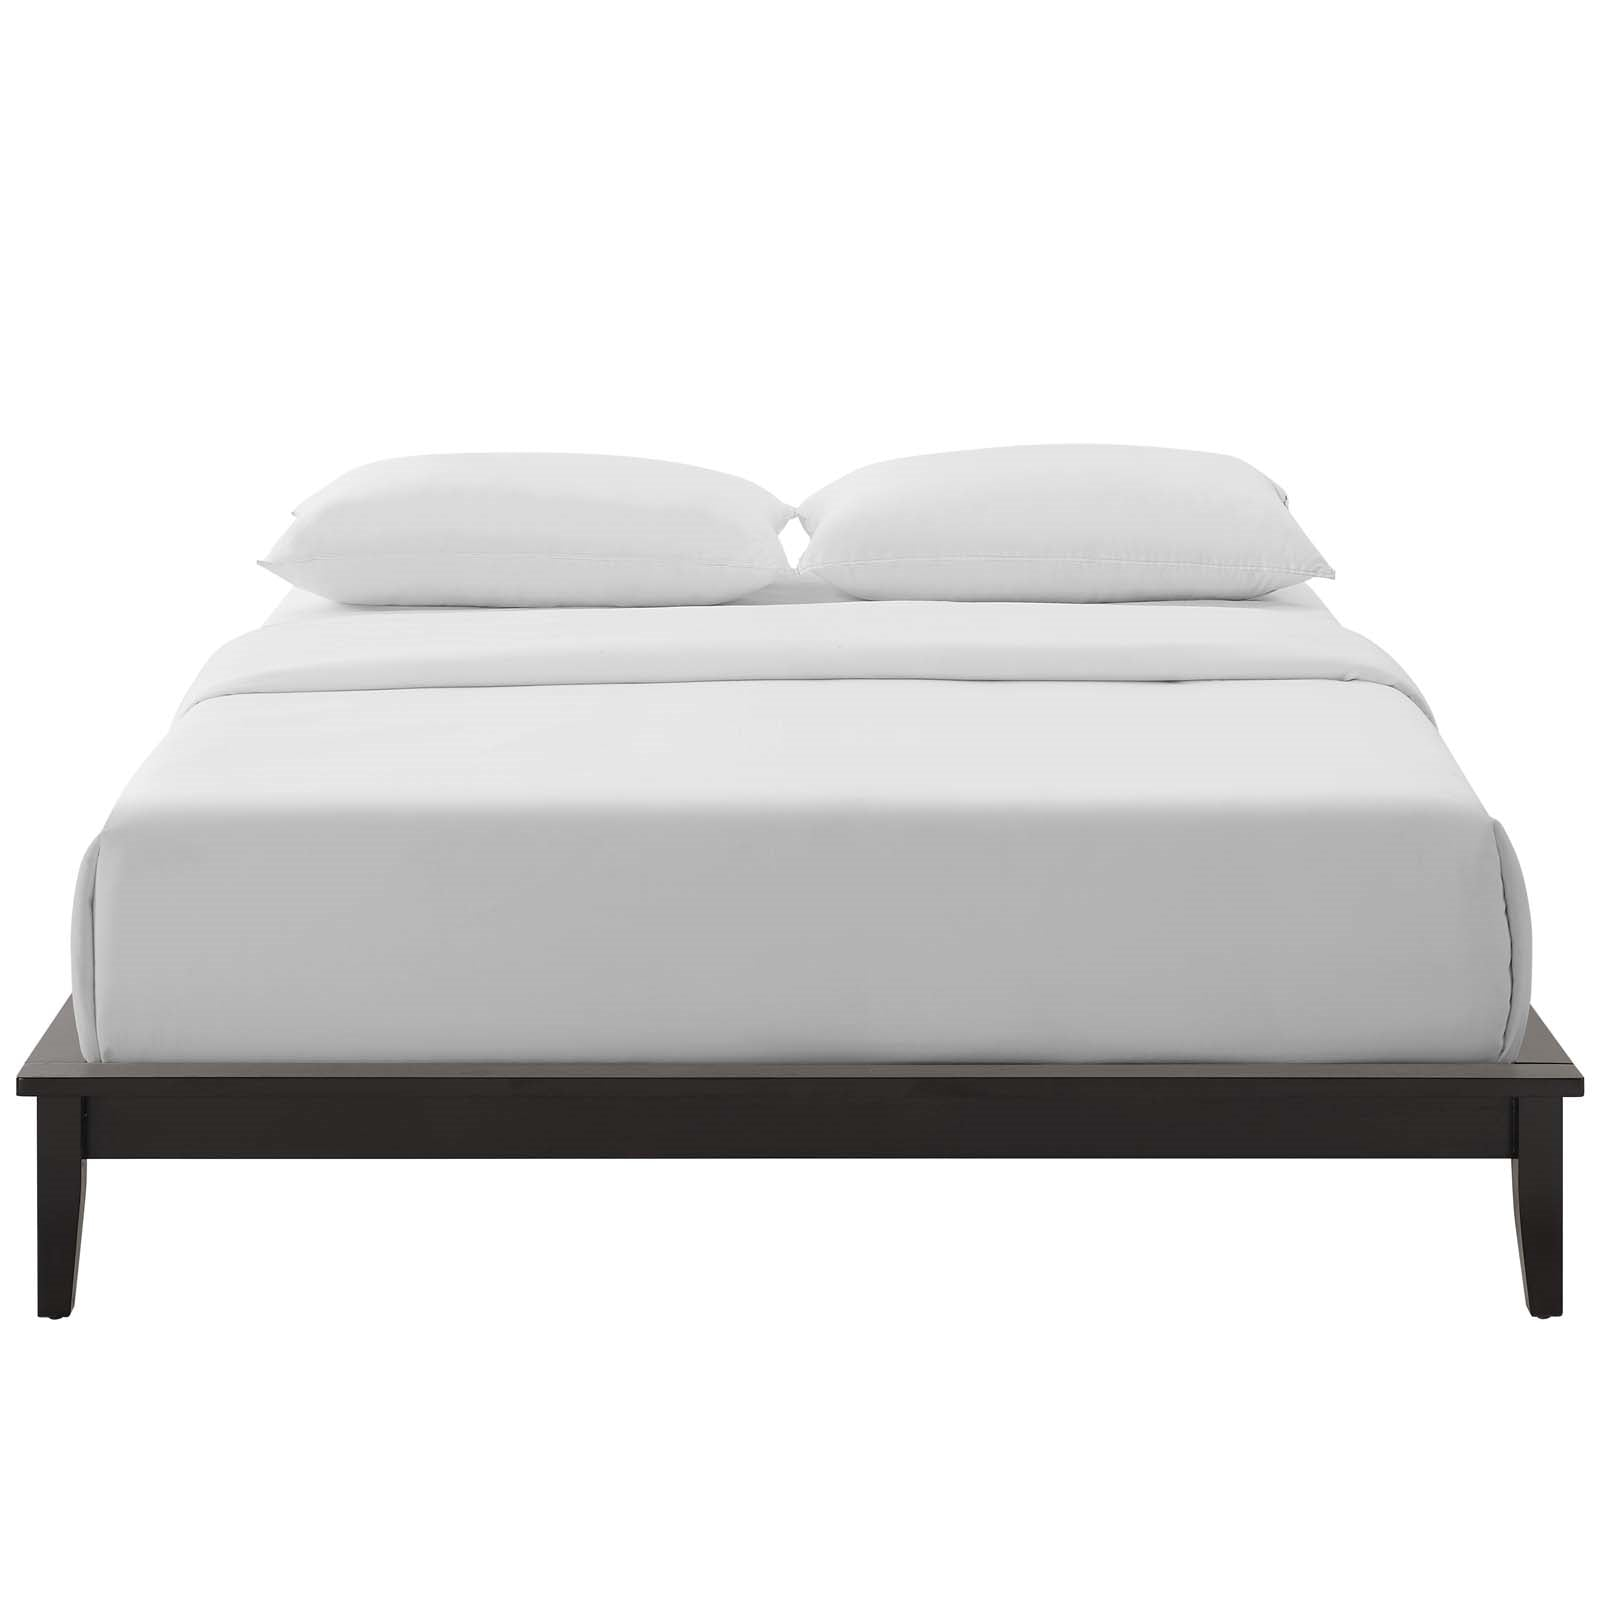 Picture of: Lodge Full Size Wood Platform Bed Online Interior Design Store And Service Provider